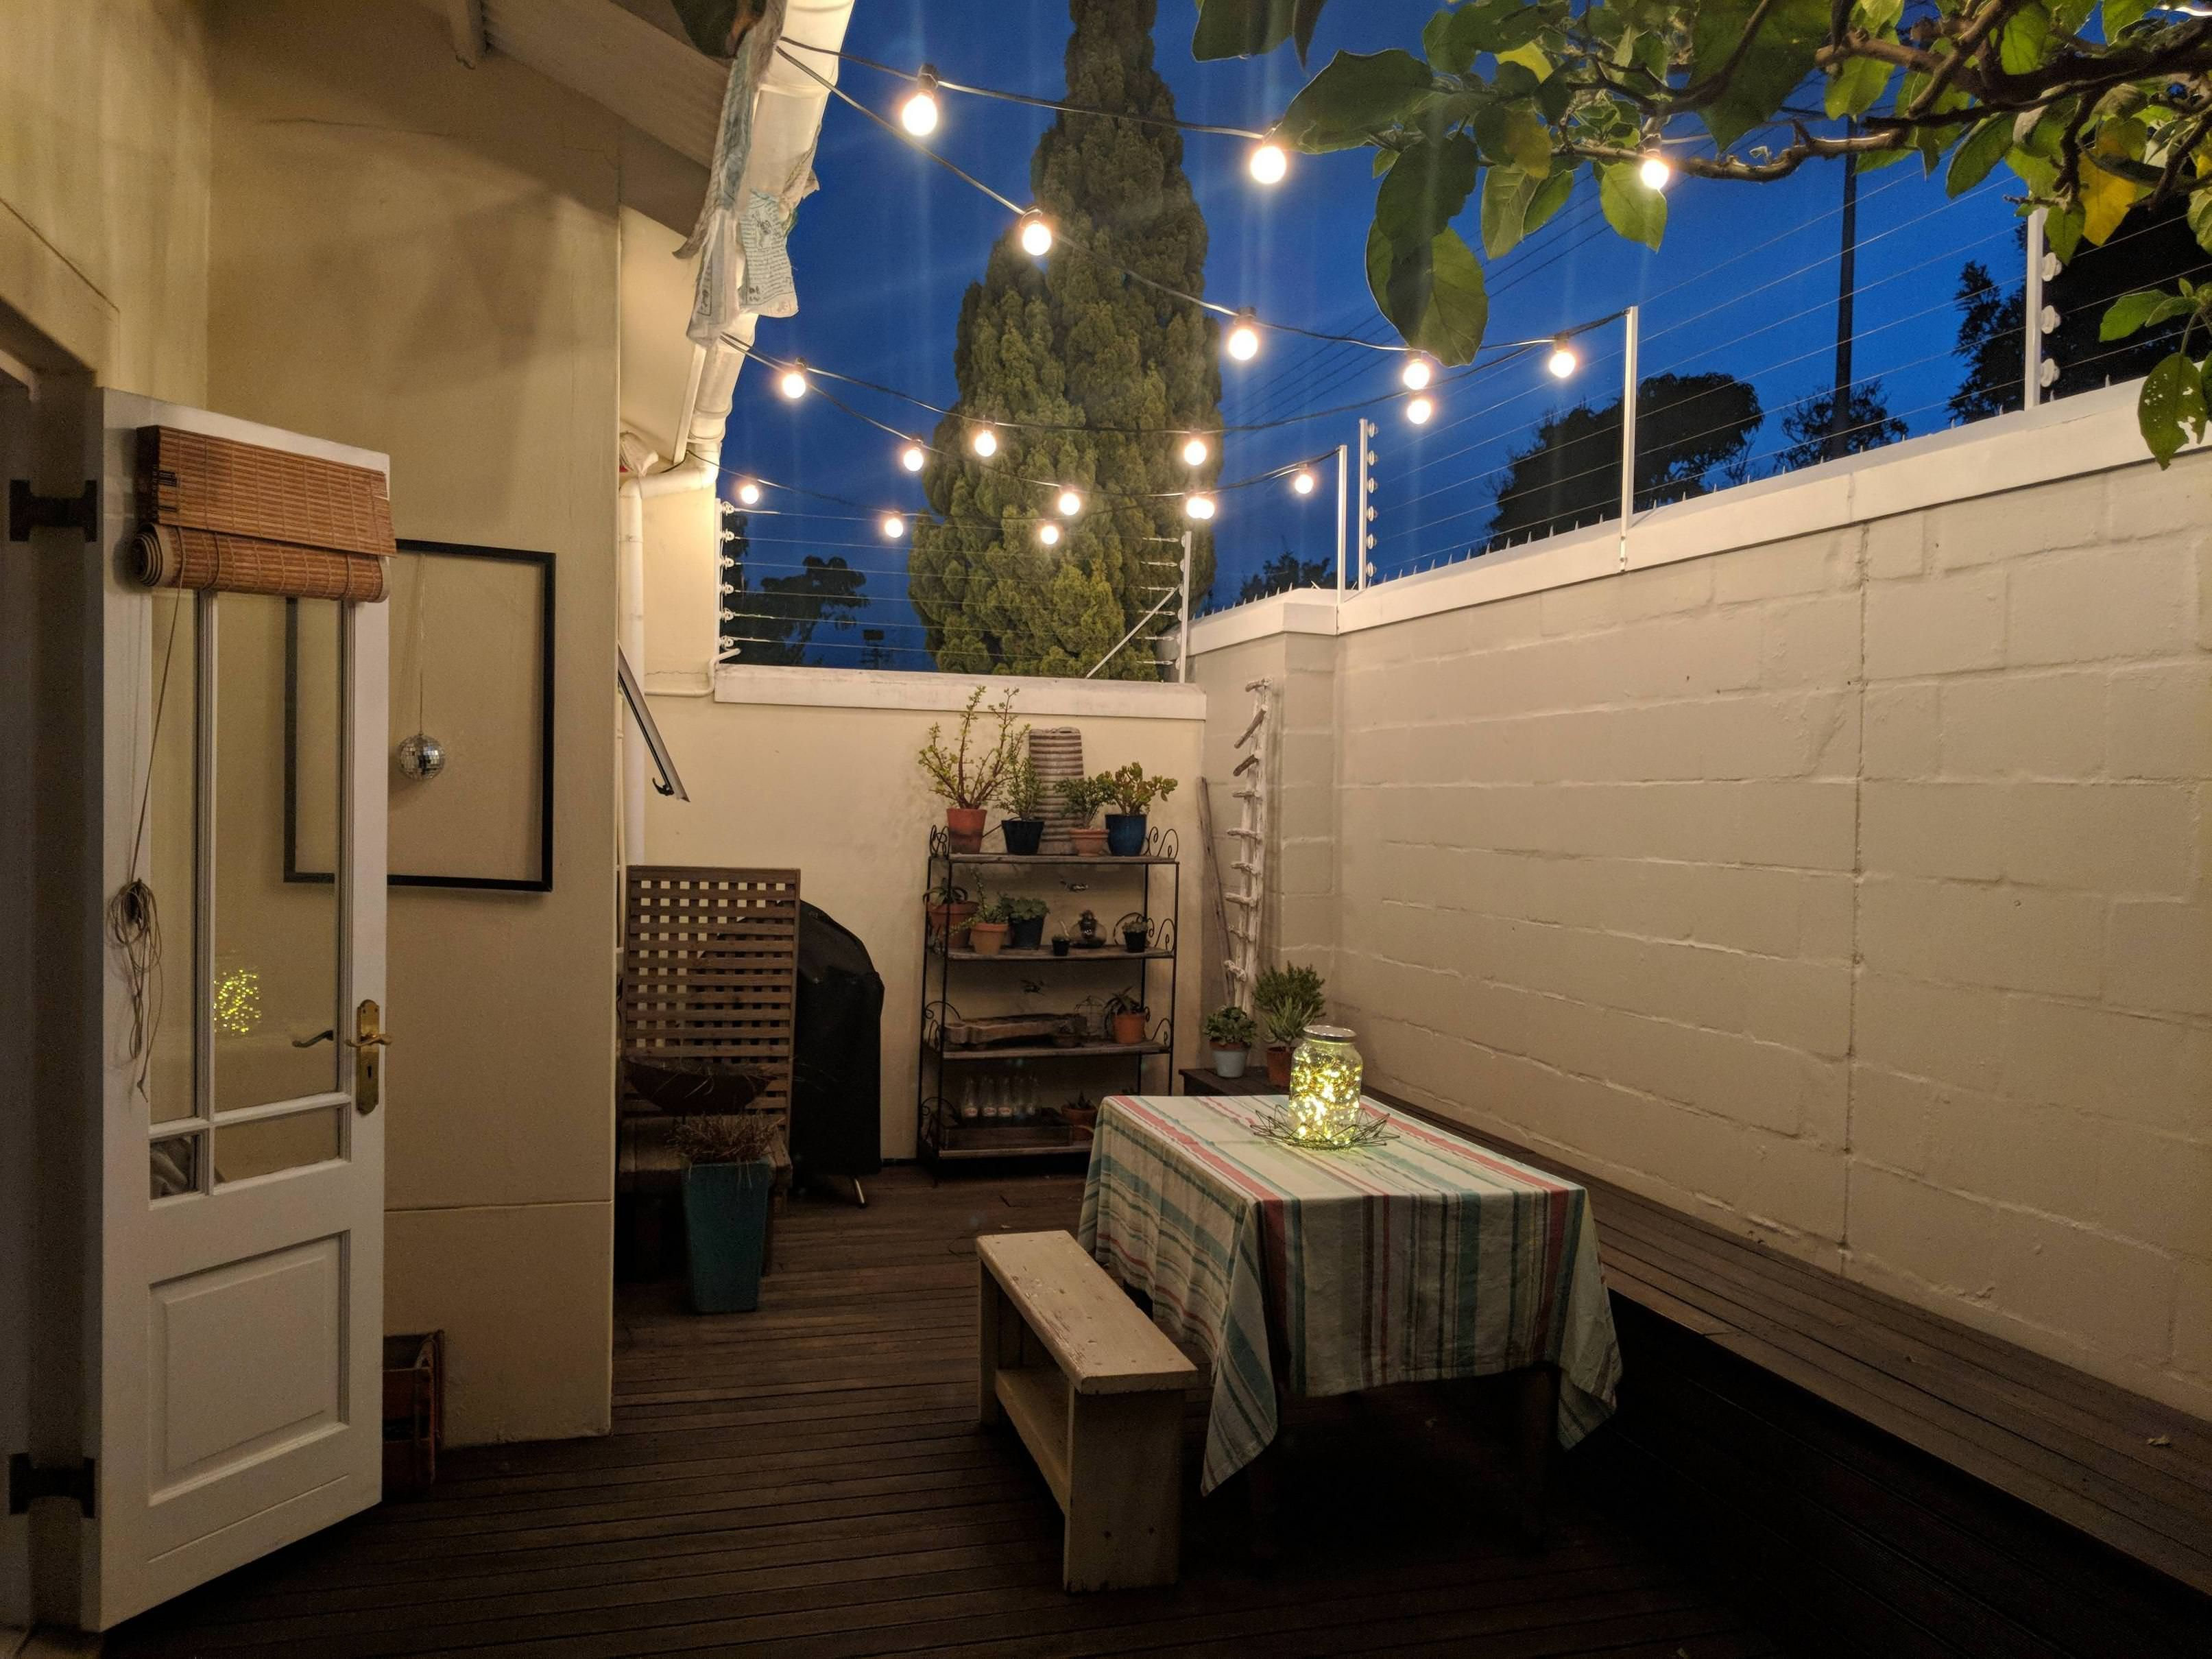 Just finished the lighting on my deck CozyPlaces (With